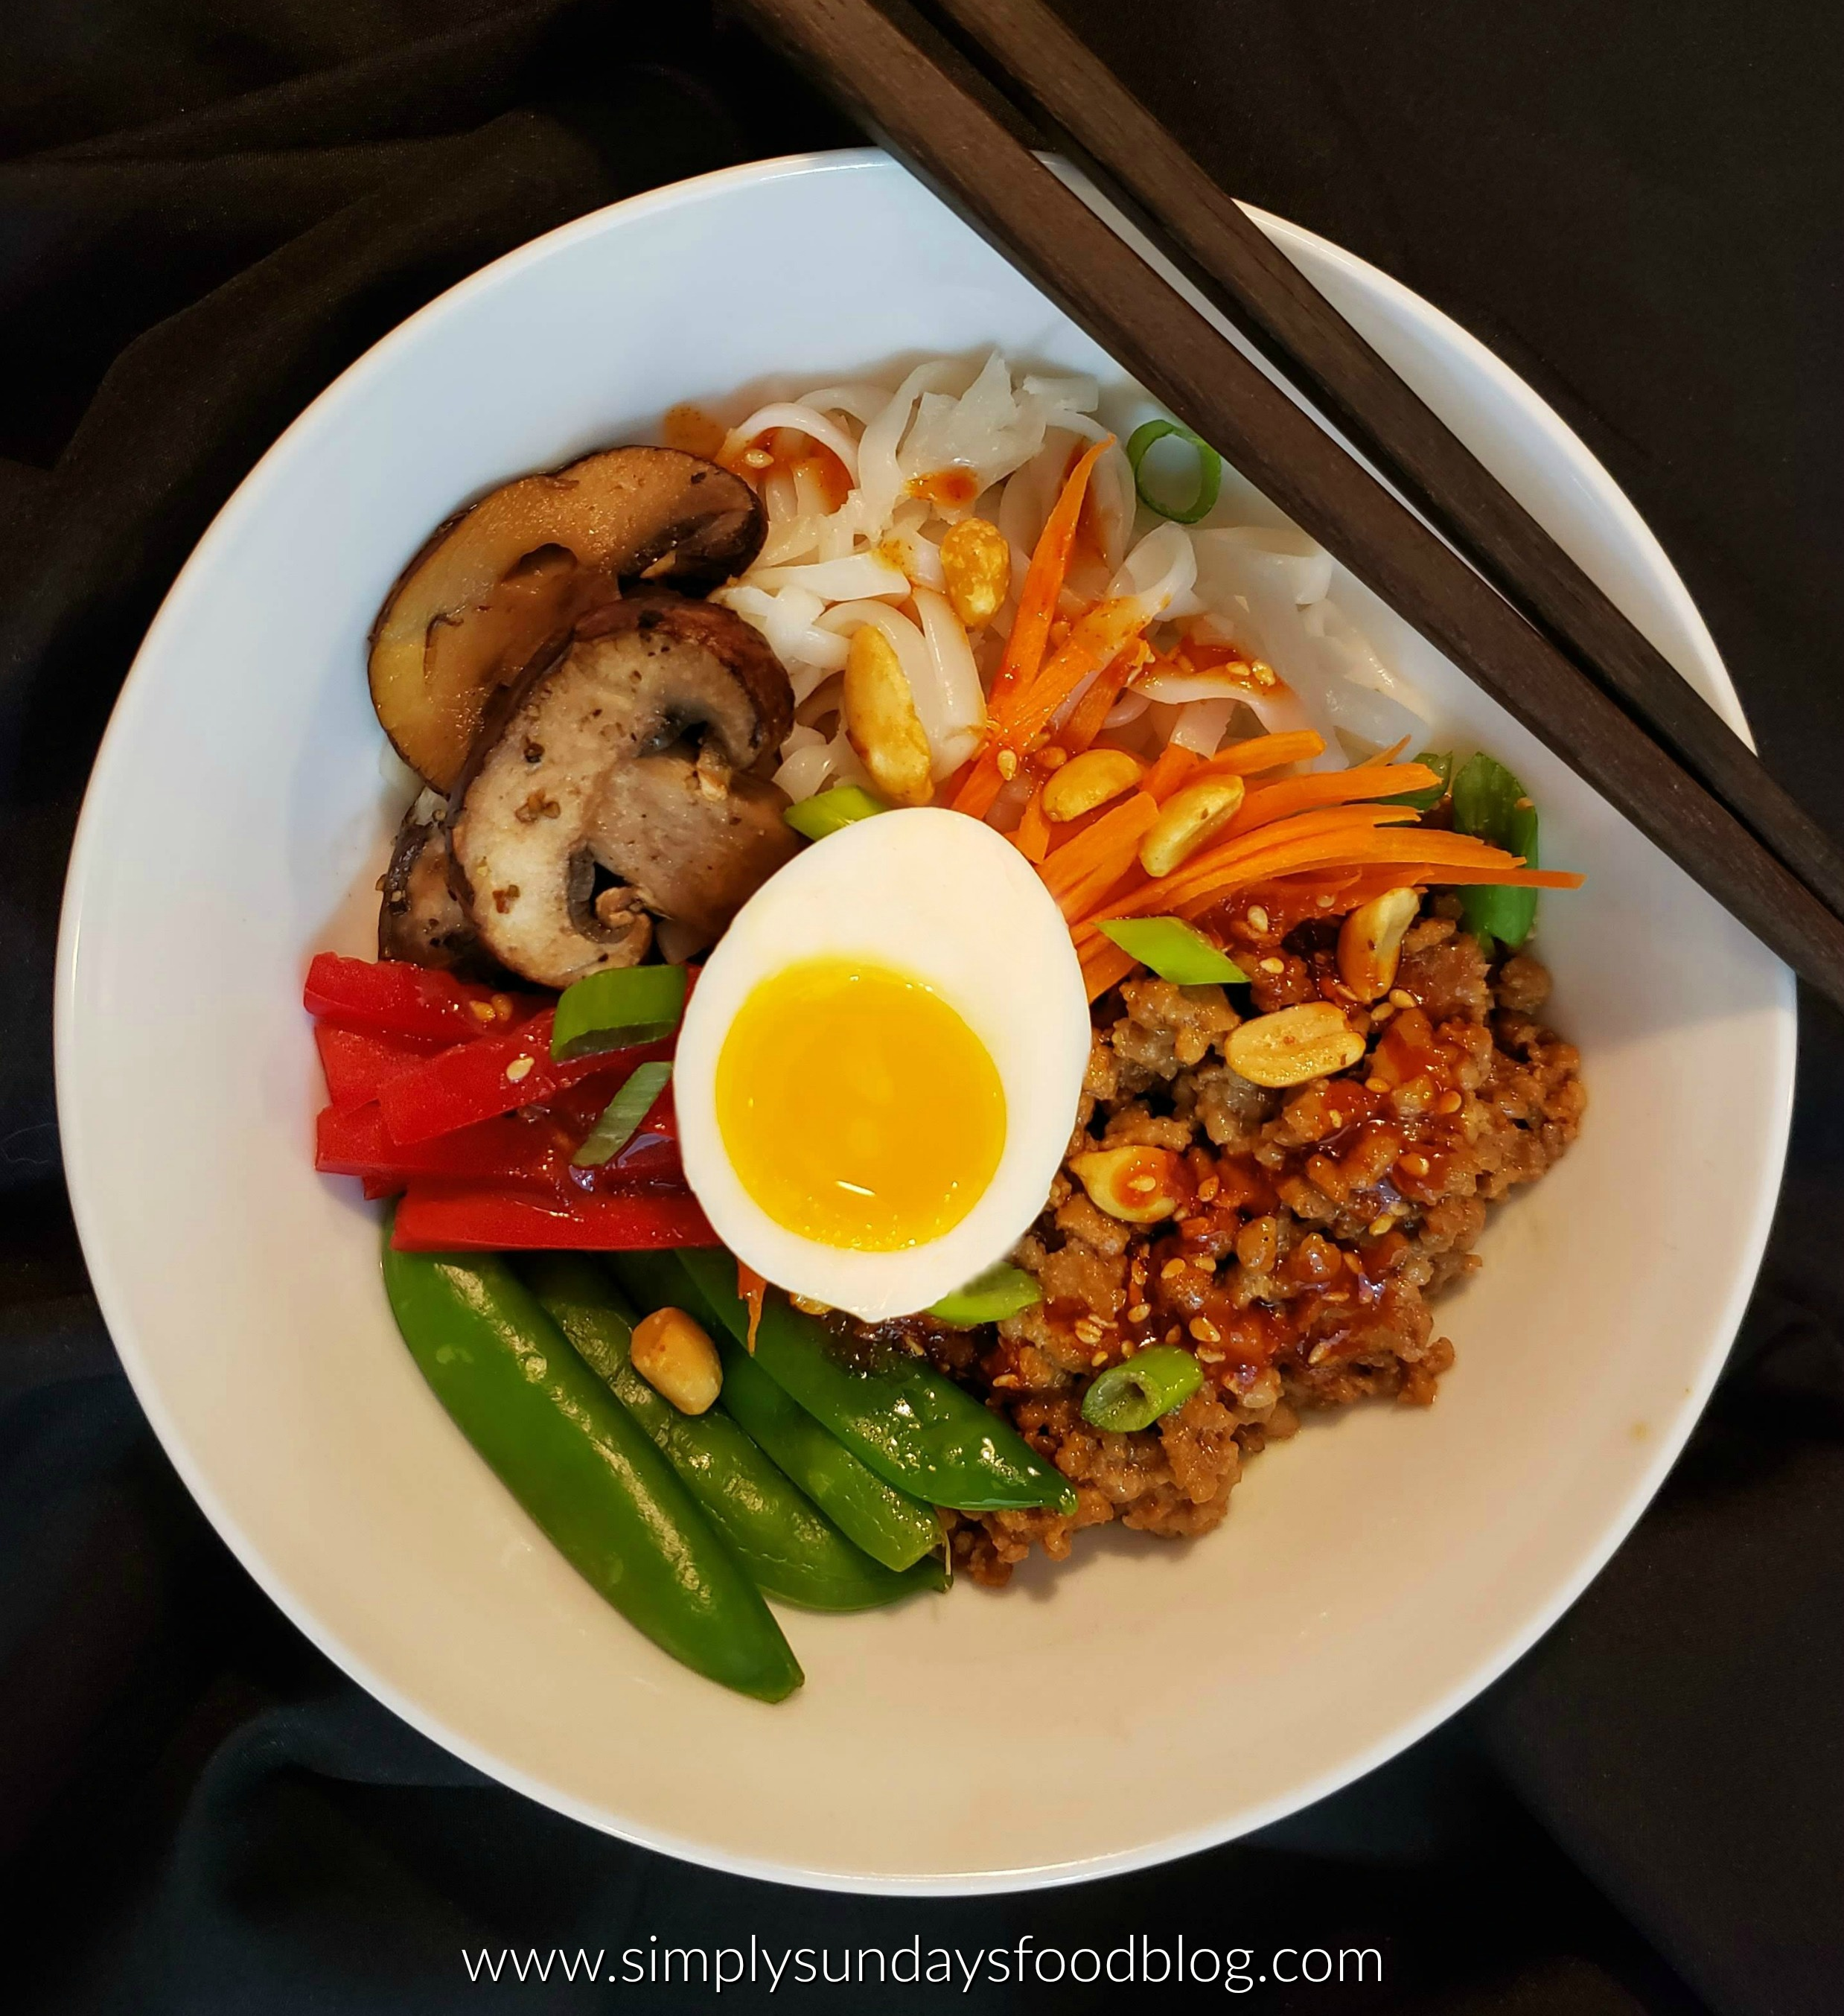 A white bowl on a black background filled with browned ground pork, white rice noodles, green sugar snap peas, bright red sliced bell pepper, browned mushrooms, orange shredded carrots with a perfectly cooked soft boiled egg halh on top drizzled with a go ju jang and sesame sauces and dry roasted peanuts